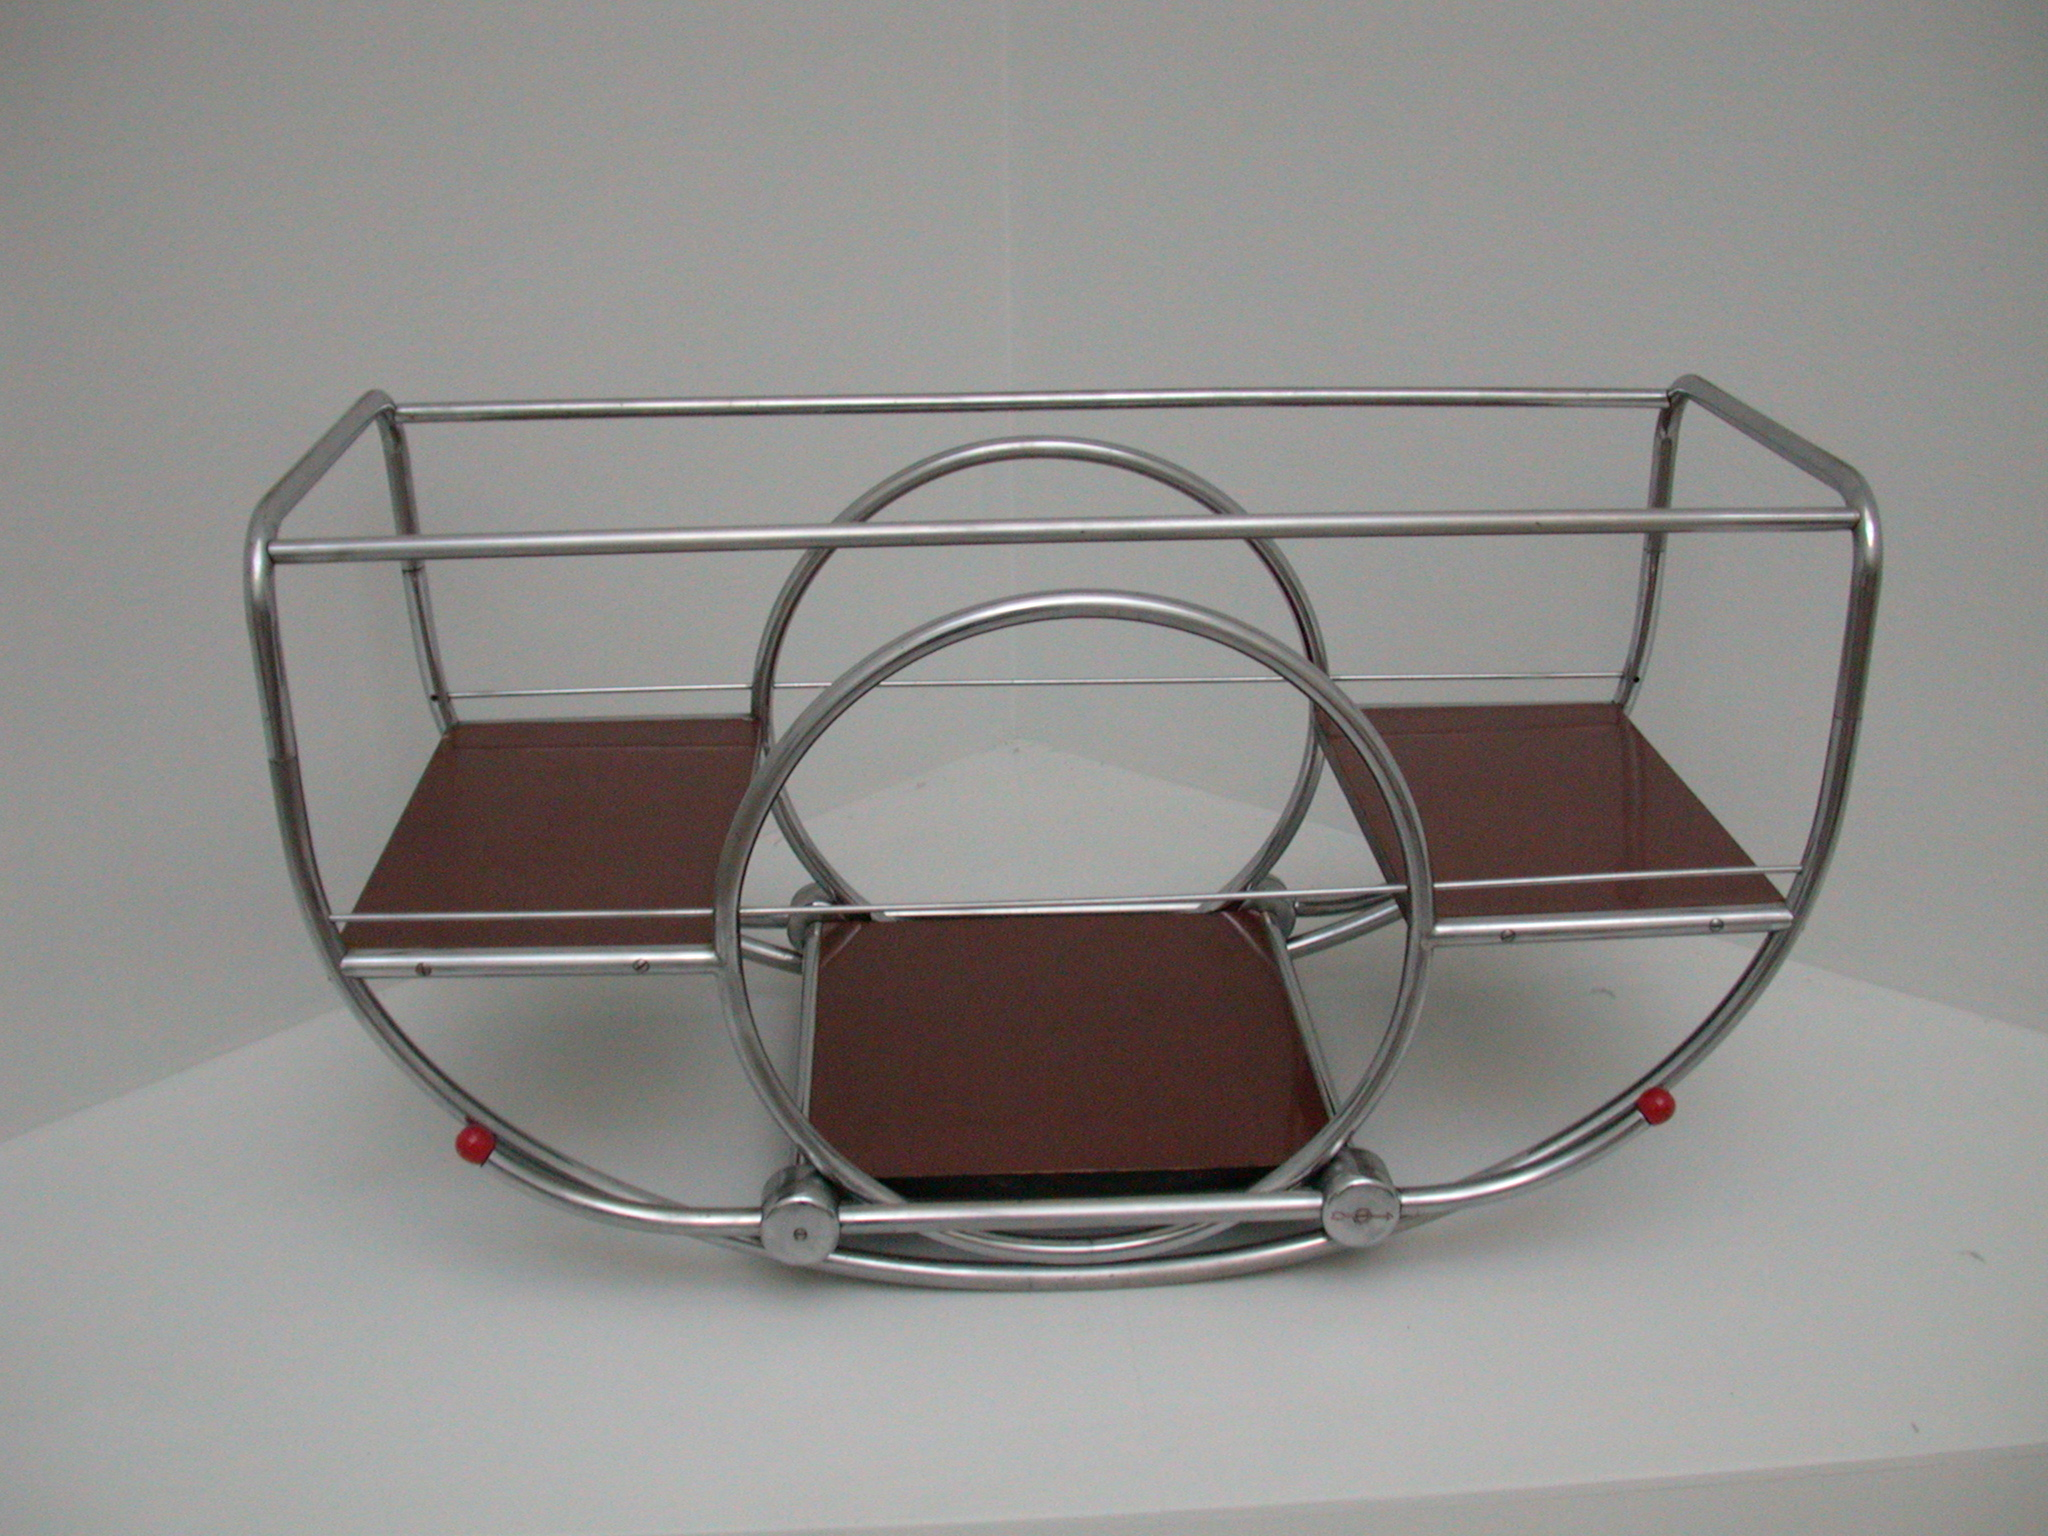 fruit bowl? missing cart from a fairground attraction or art